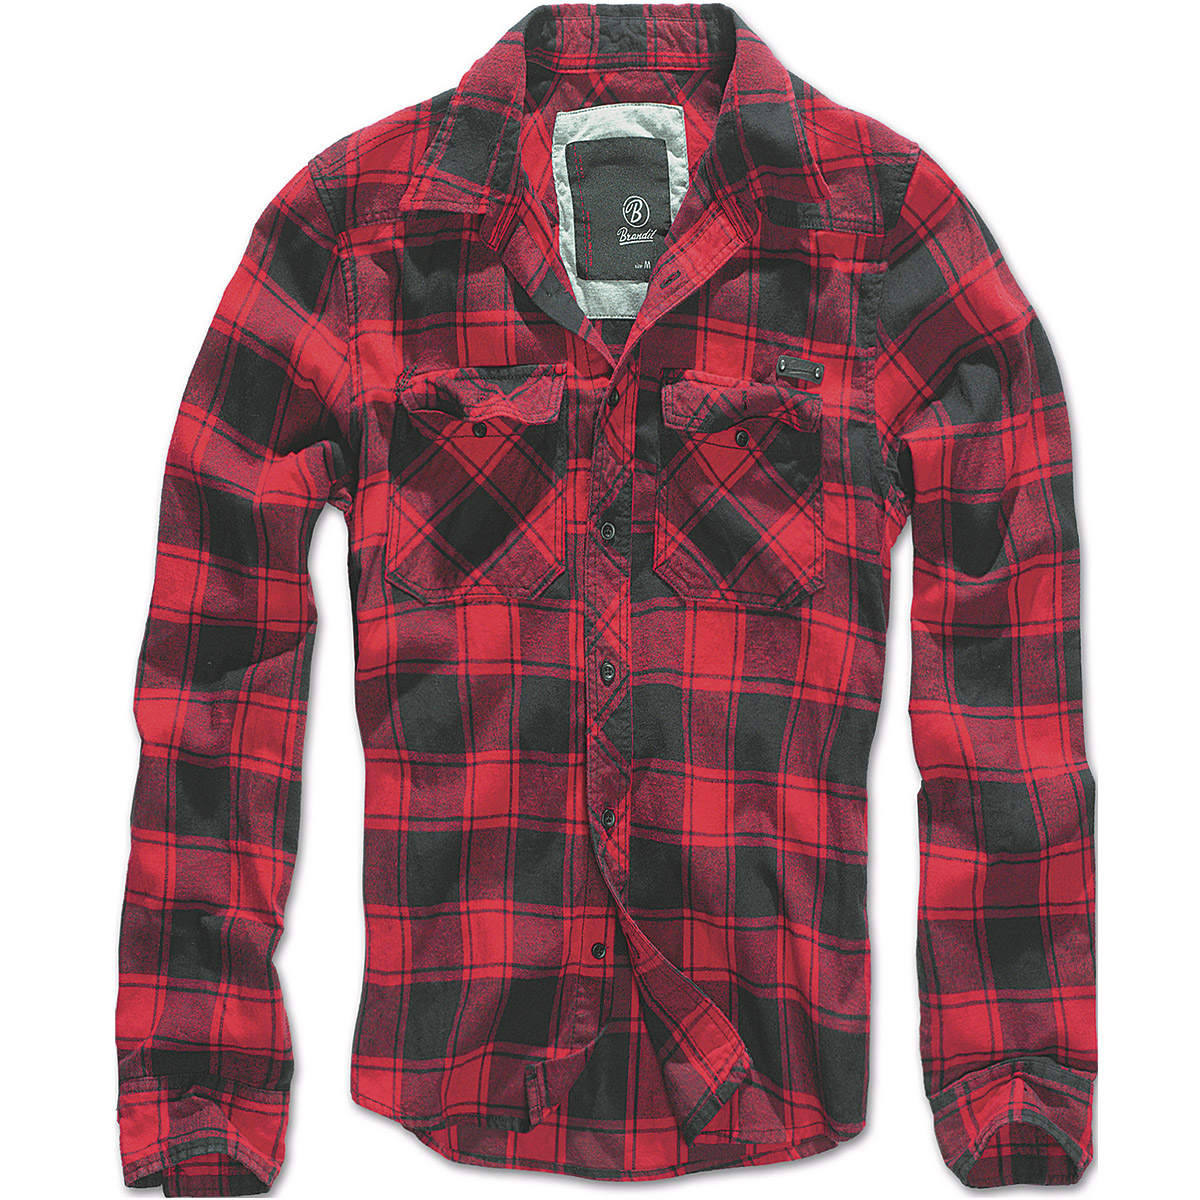 Brandit Mens Casual Check Cotton Flannel Shirt Long Sleeve